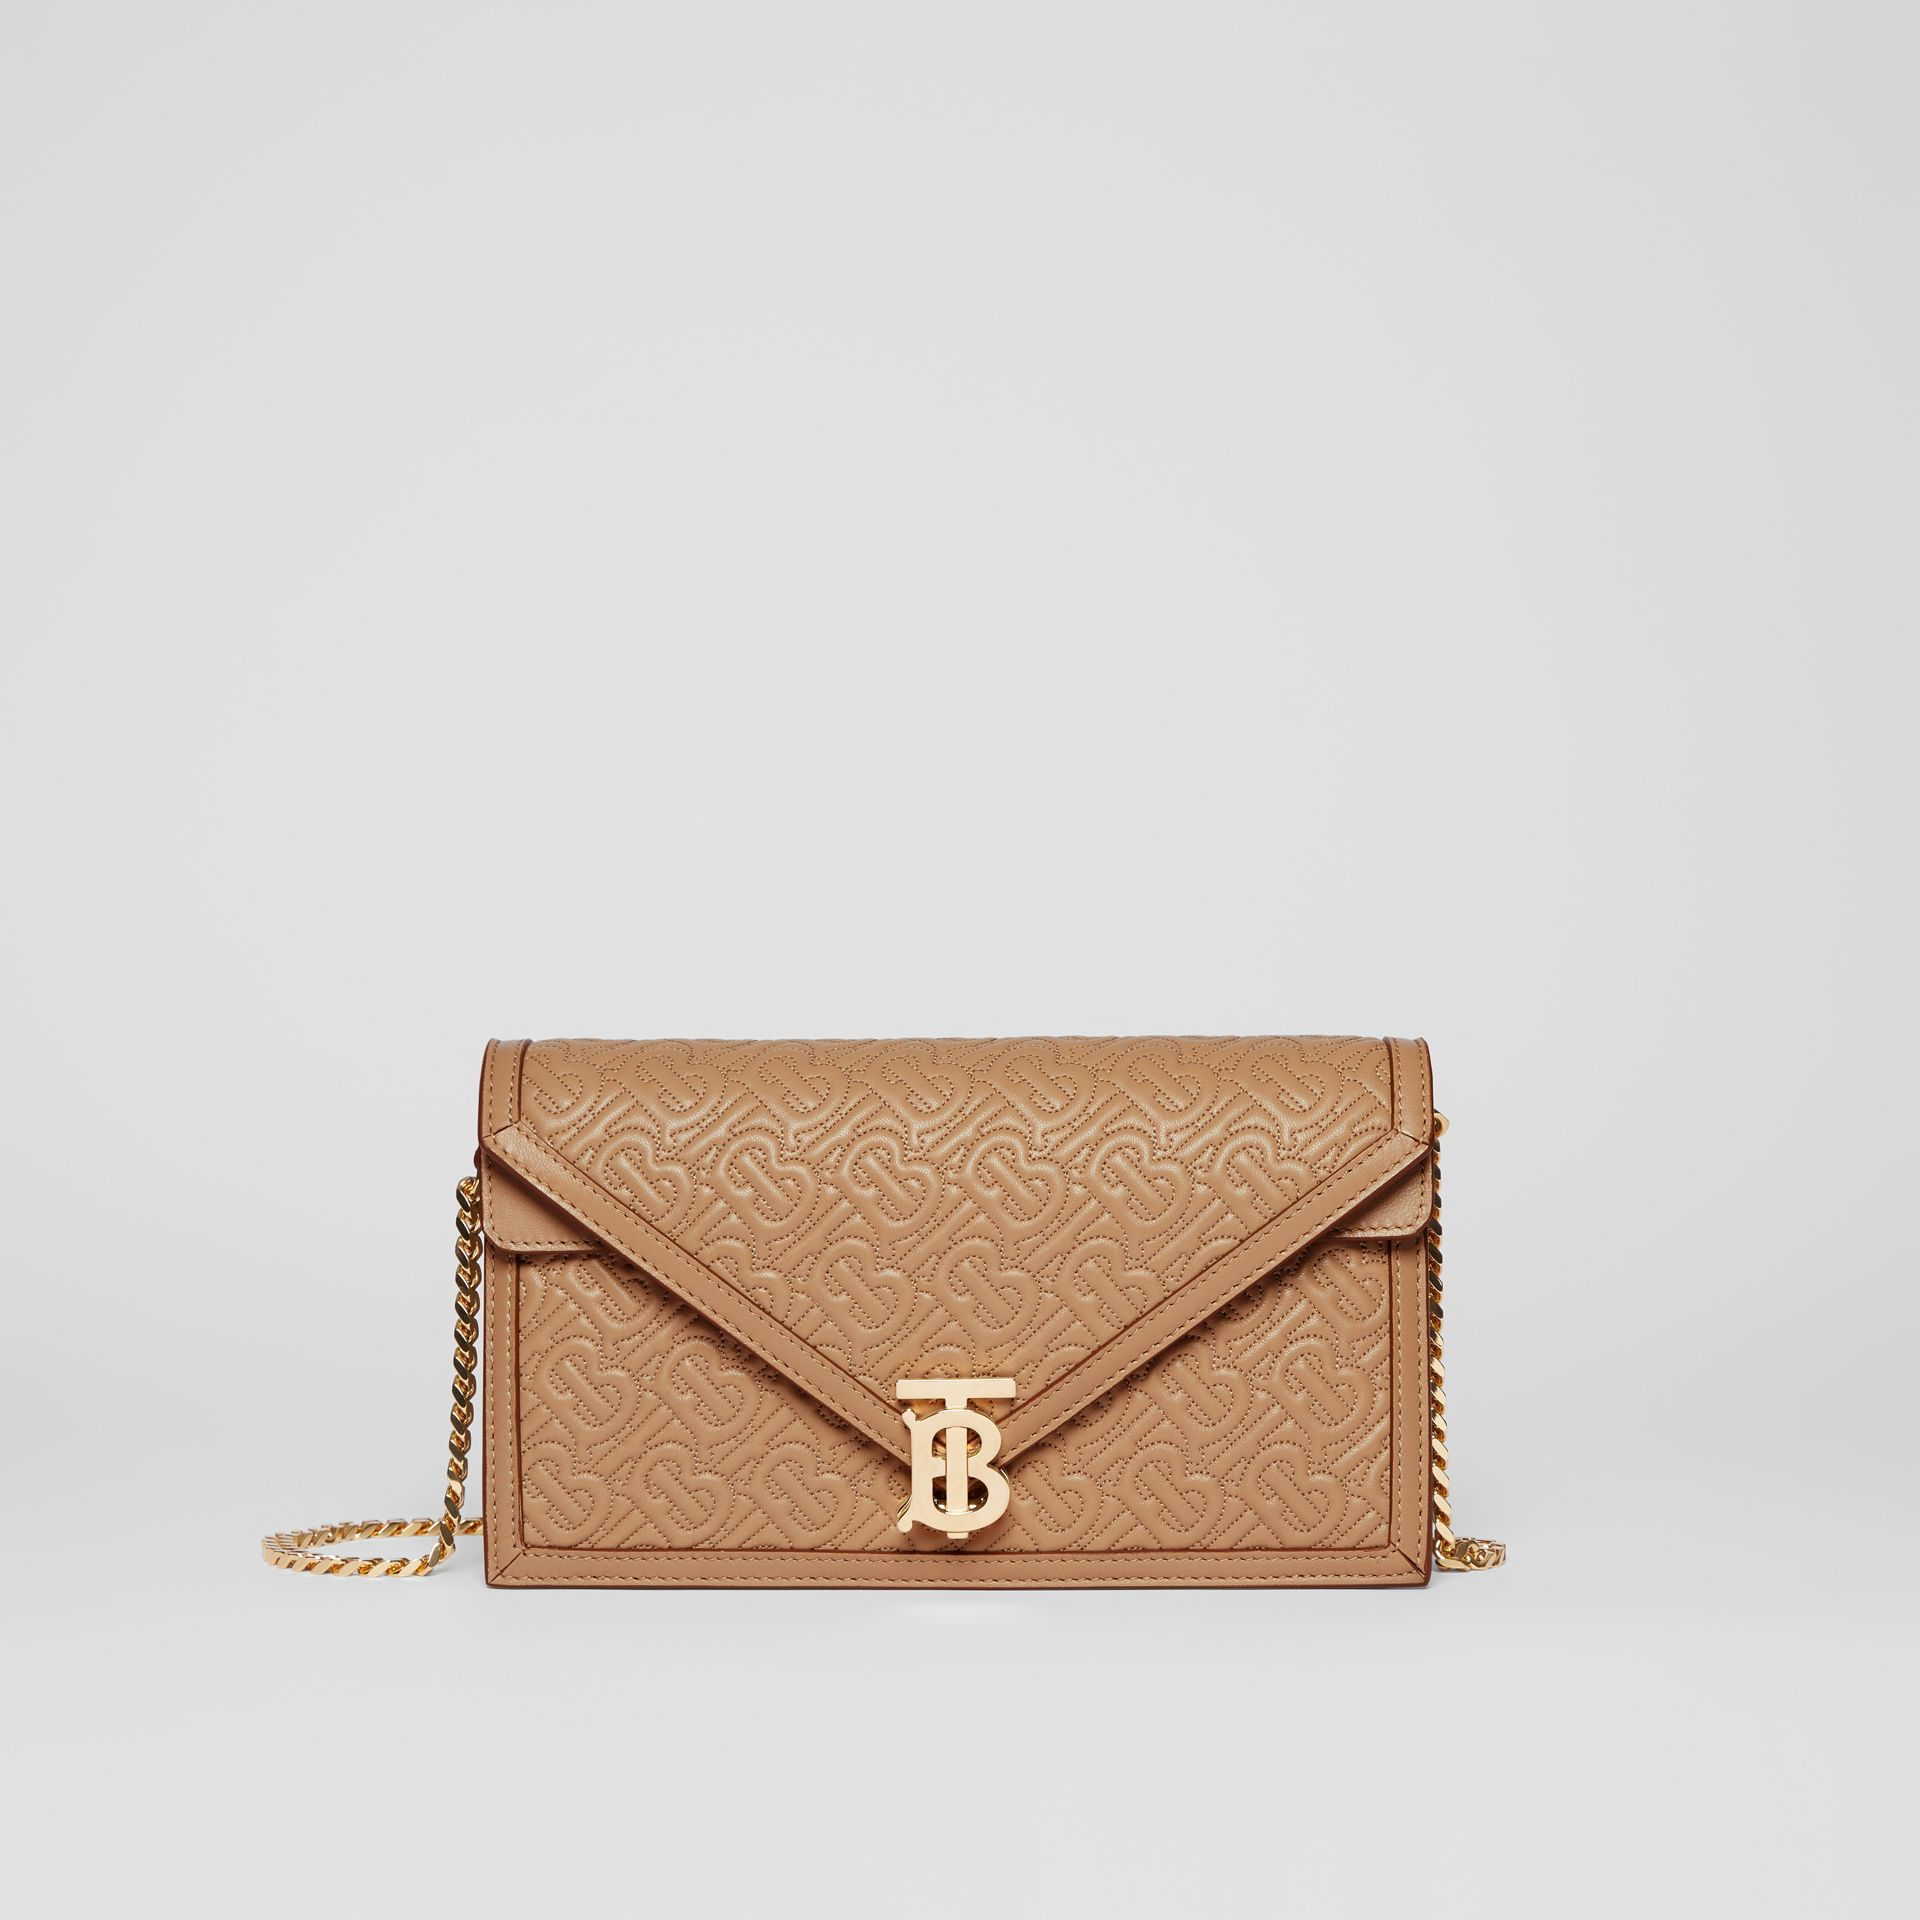 Small Quilted Monogram TB Envelope Clutch in Honey - Women | Burberry - gallery image 0